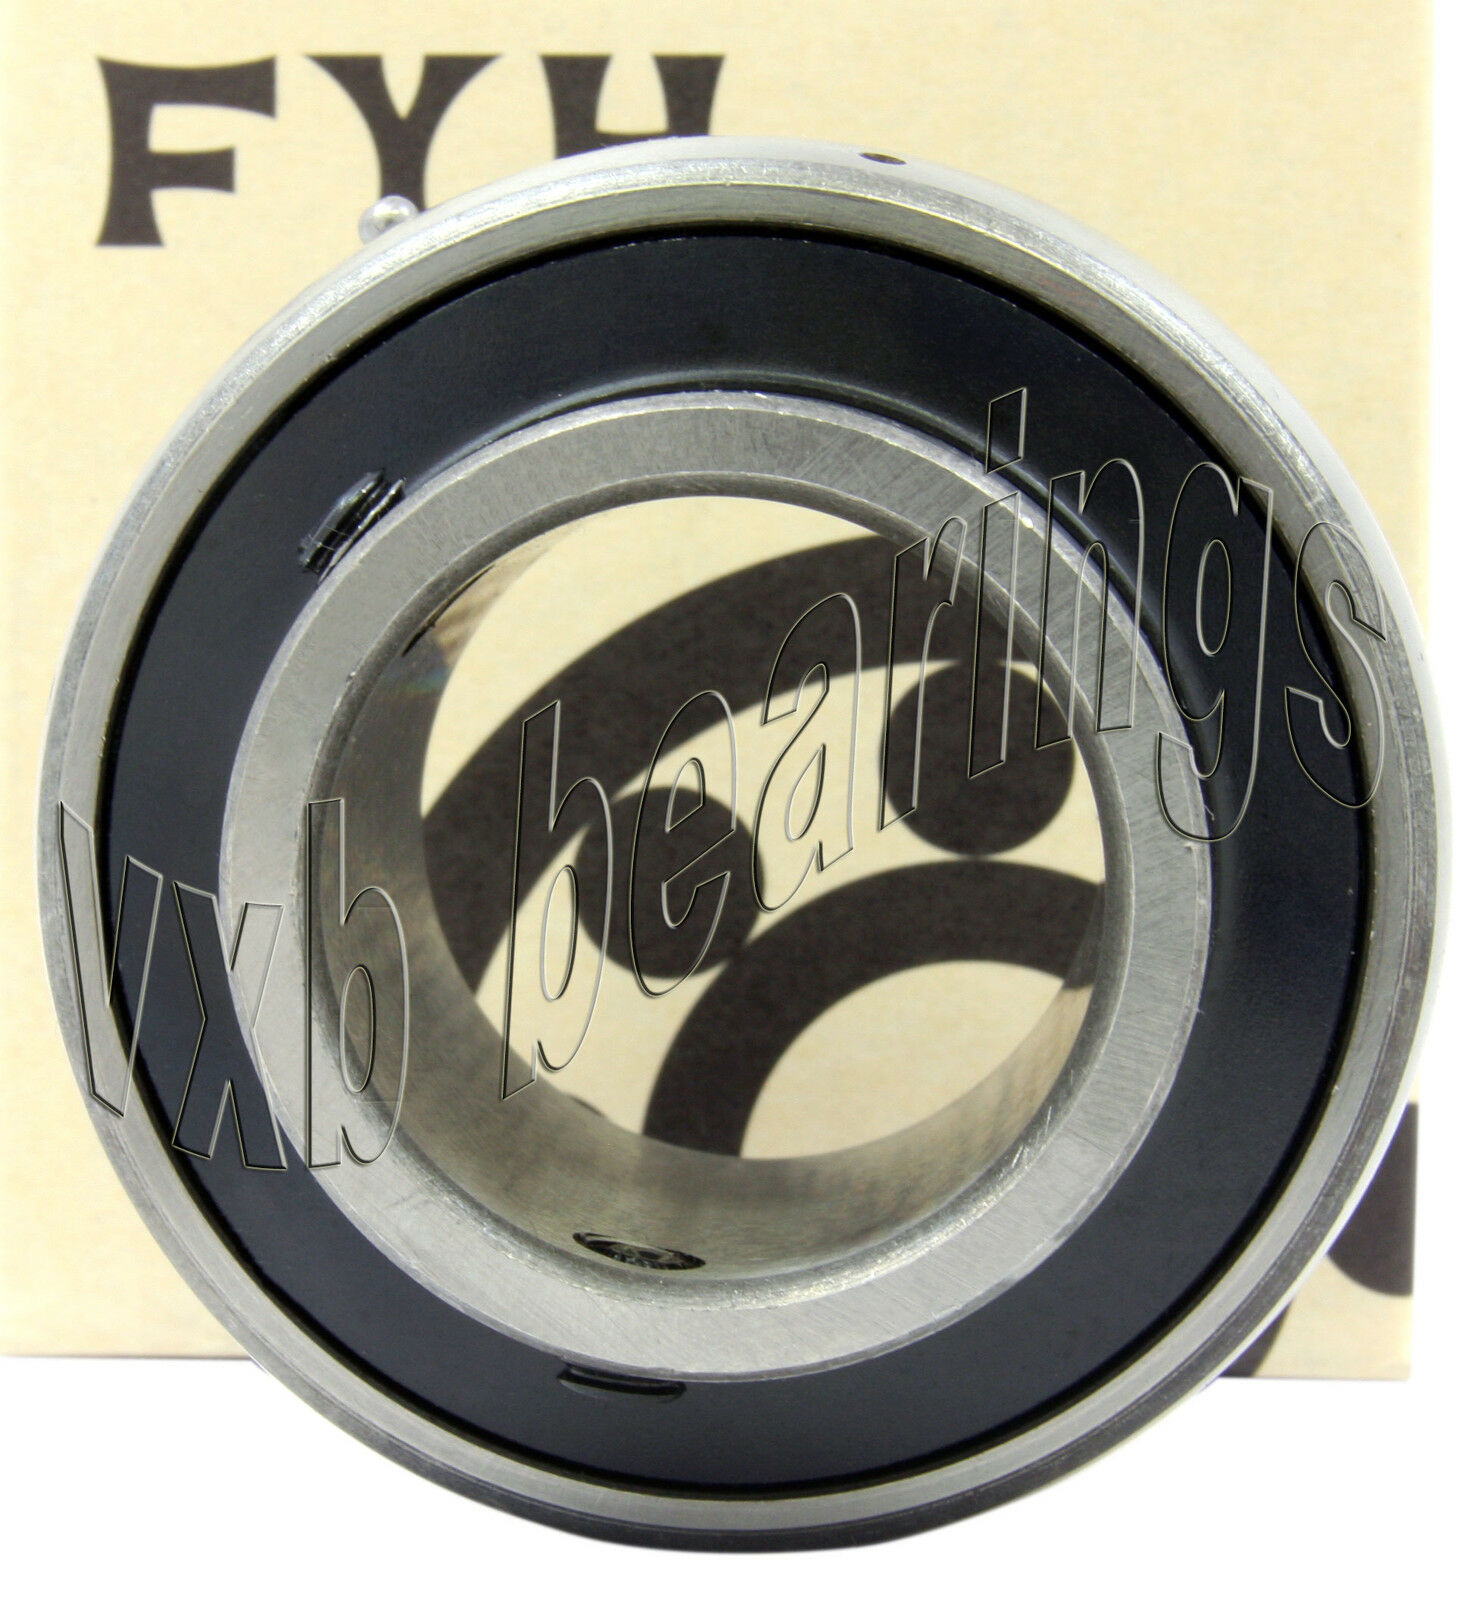 FYH Bearing UC305 25mm Axle Insert Mounted Bearings